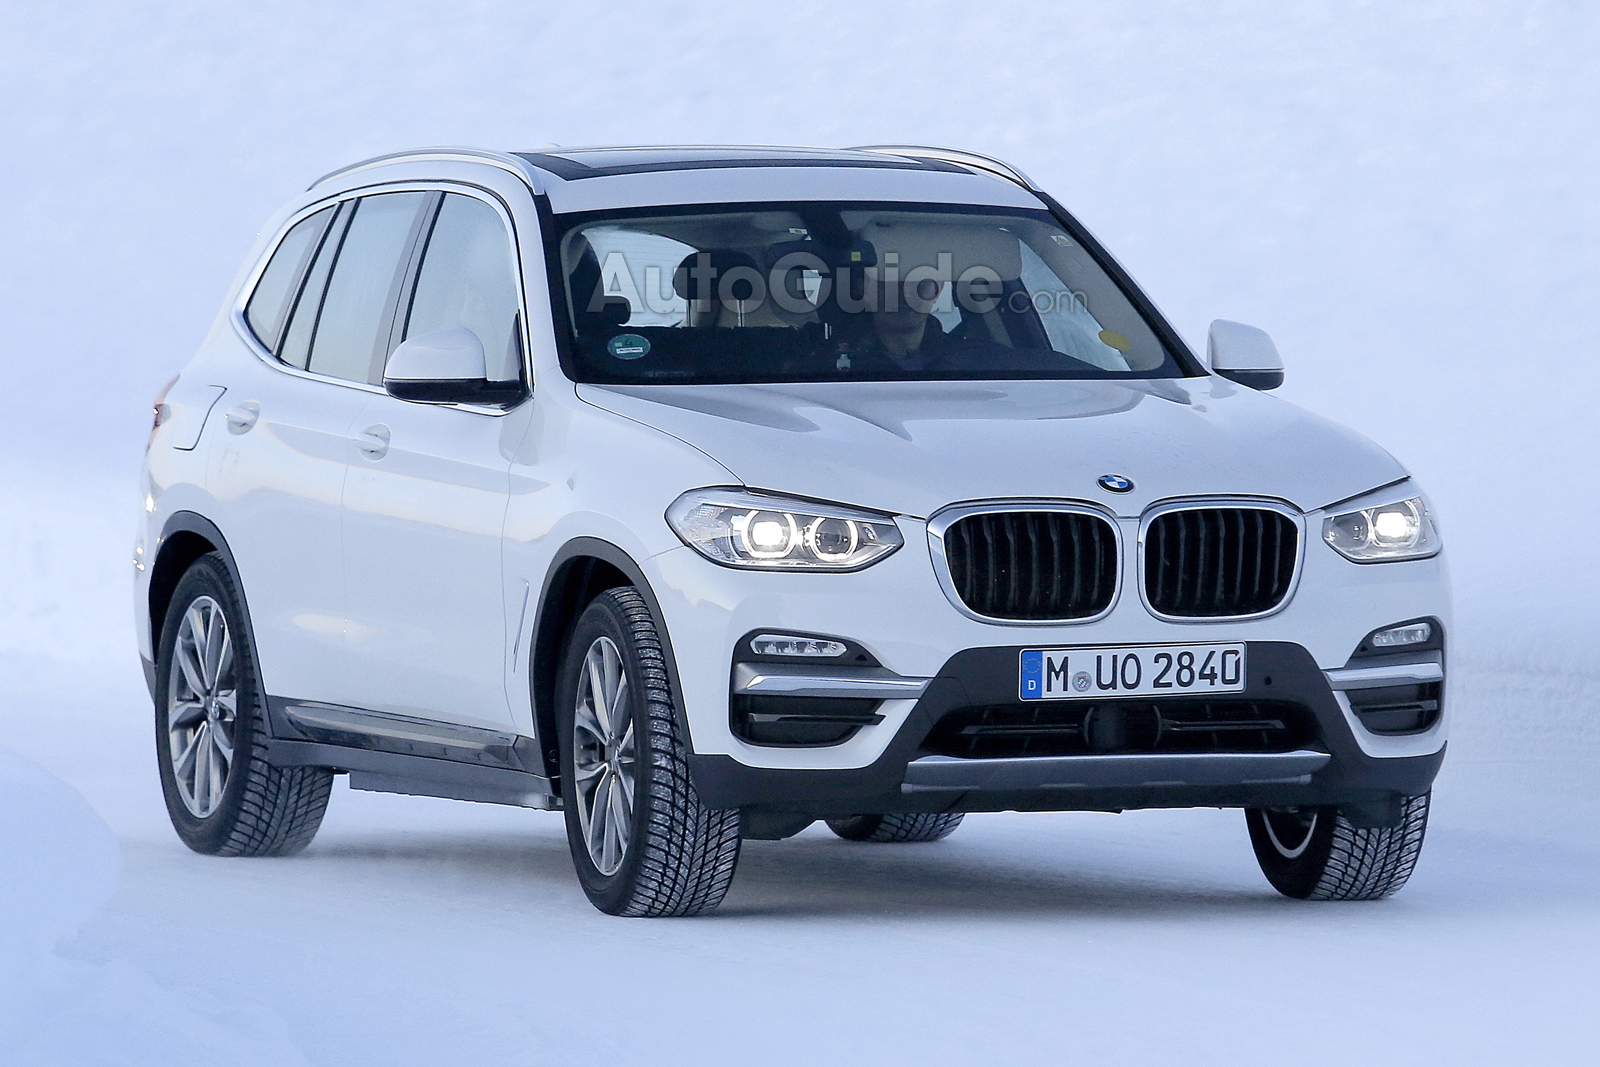 First Photos Of Pure Electric BMW IX3 Crossover